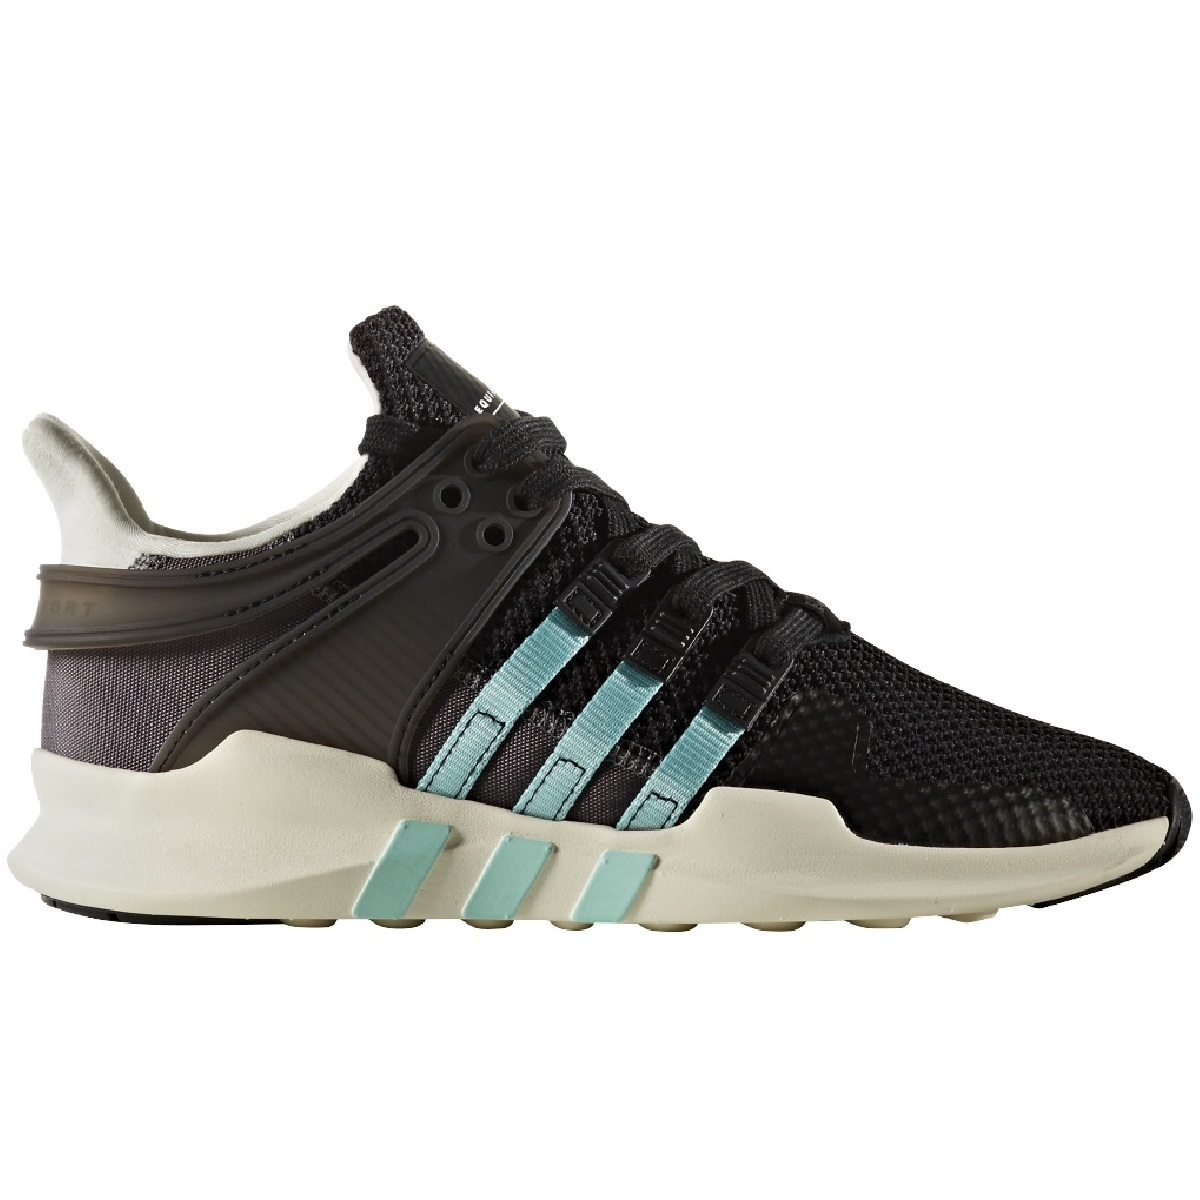 836581d004 adidas Originals Equipment Support Adverve Damen Sneaker EQT schwarz ...